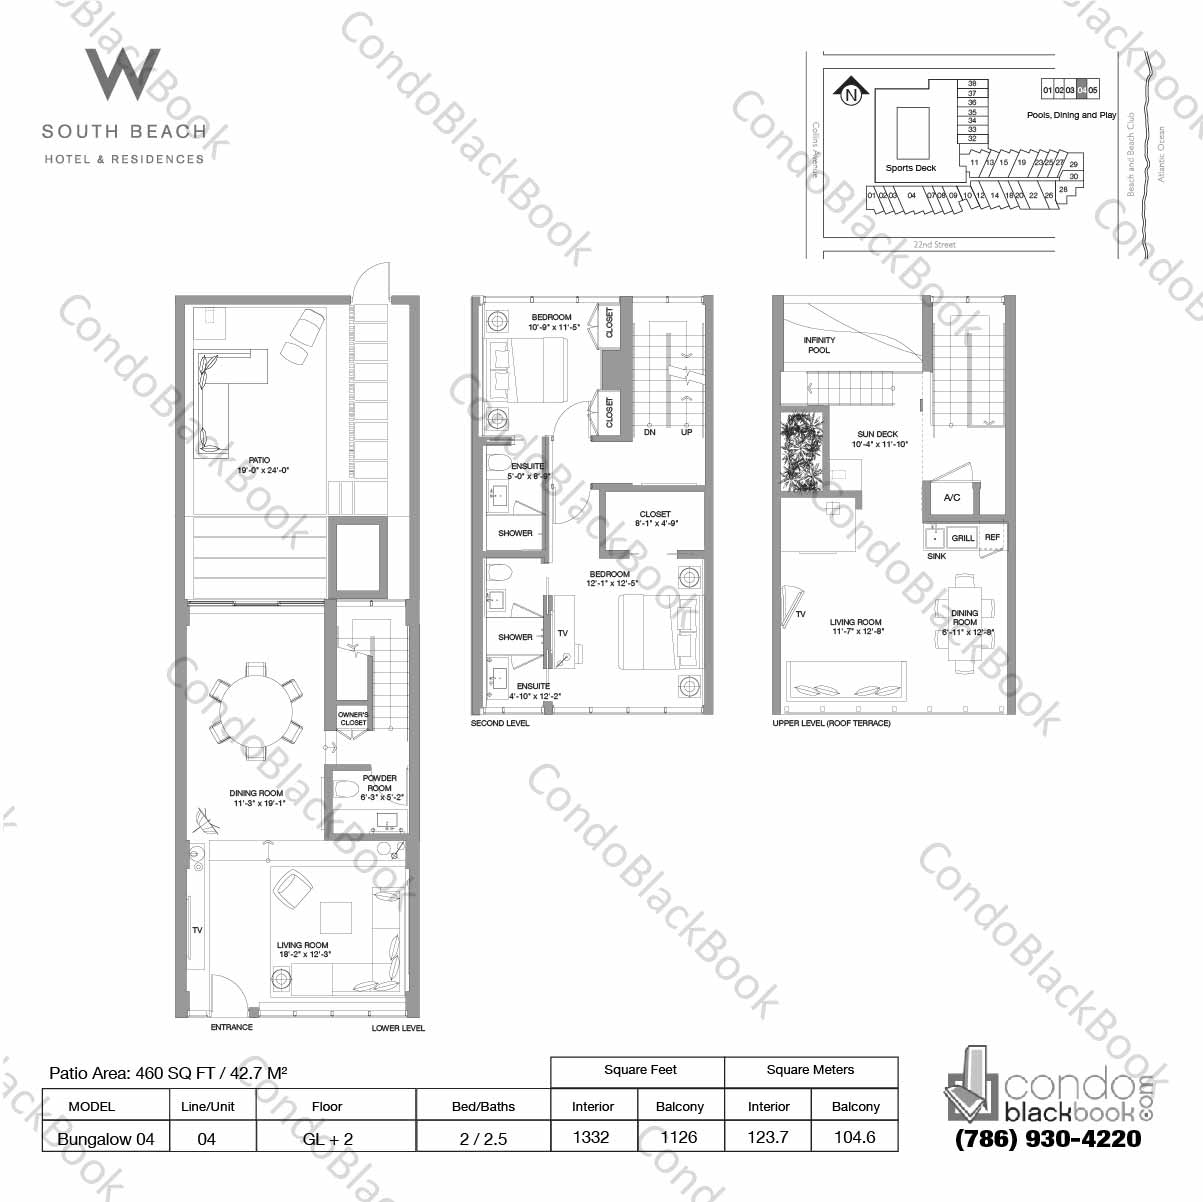 Floor plan for W South Beach South Beach Miami Beach, model Bungalow 04, line 04, 2 / 2.5 bedrooms, 1332 sq ft